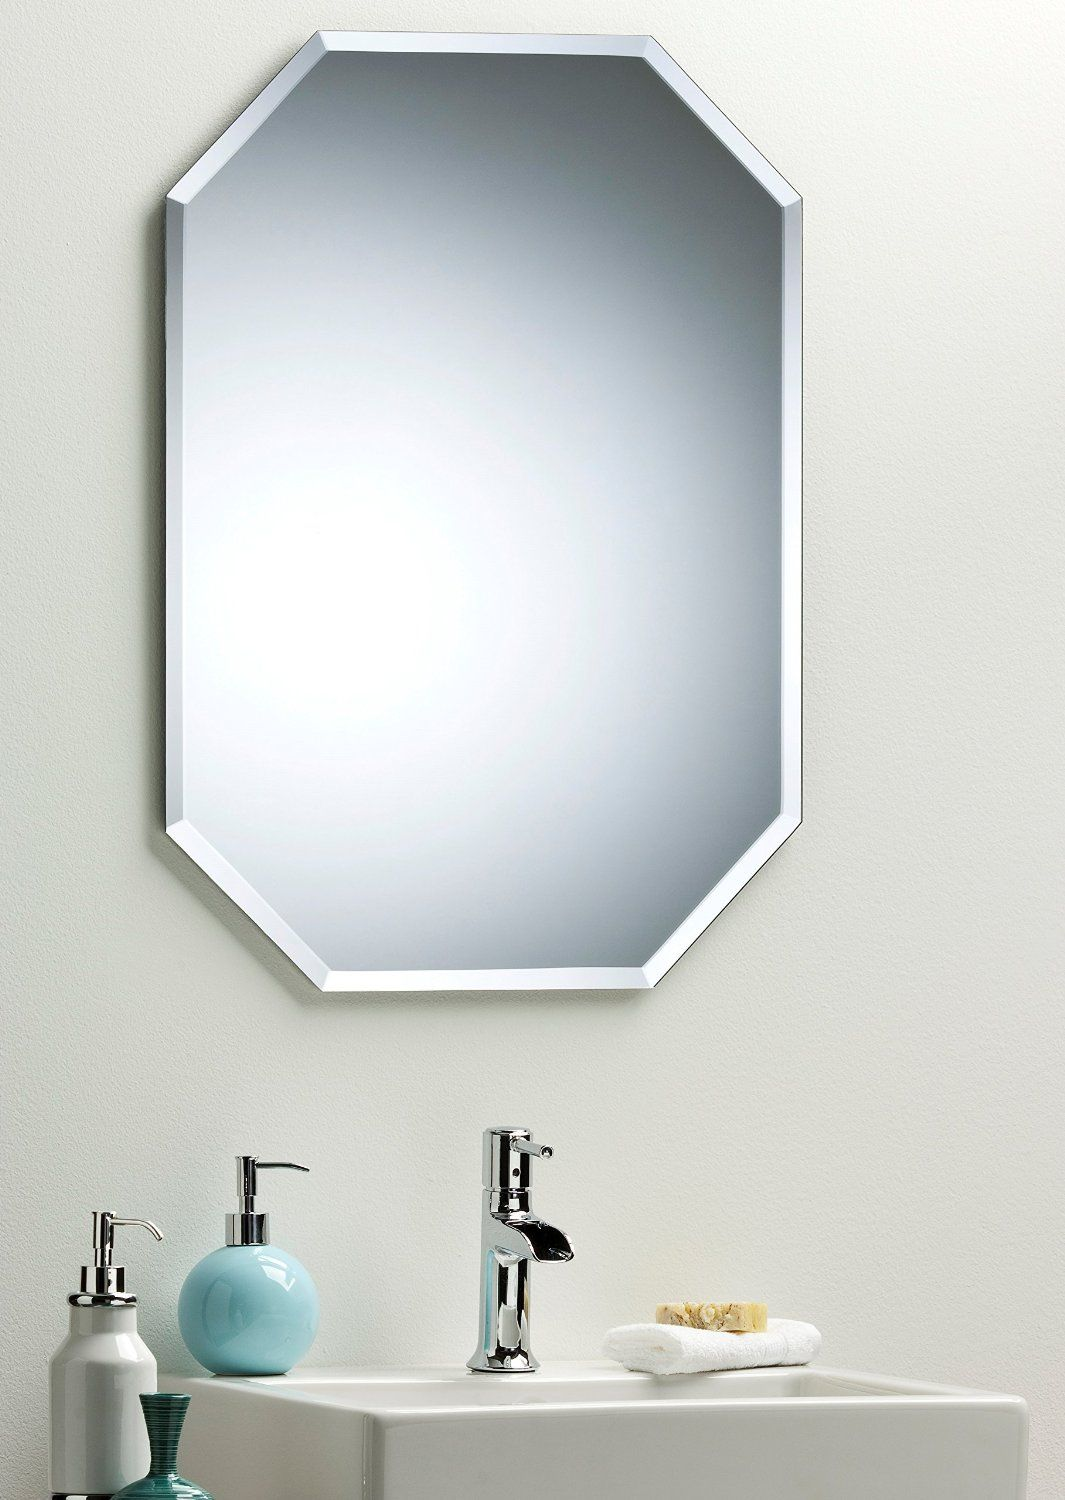 Octagon Bathroom Wall Mirror Modern Stylish With Bevel Plain 2